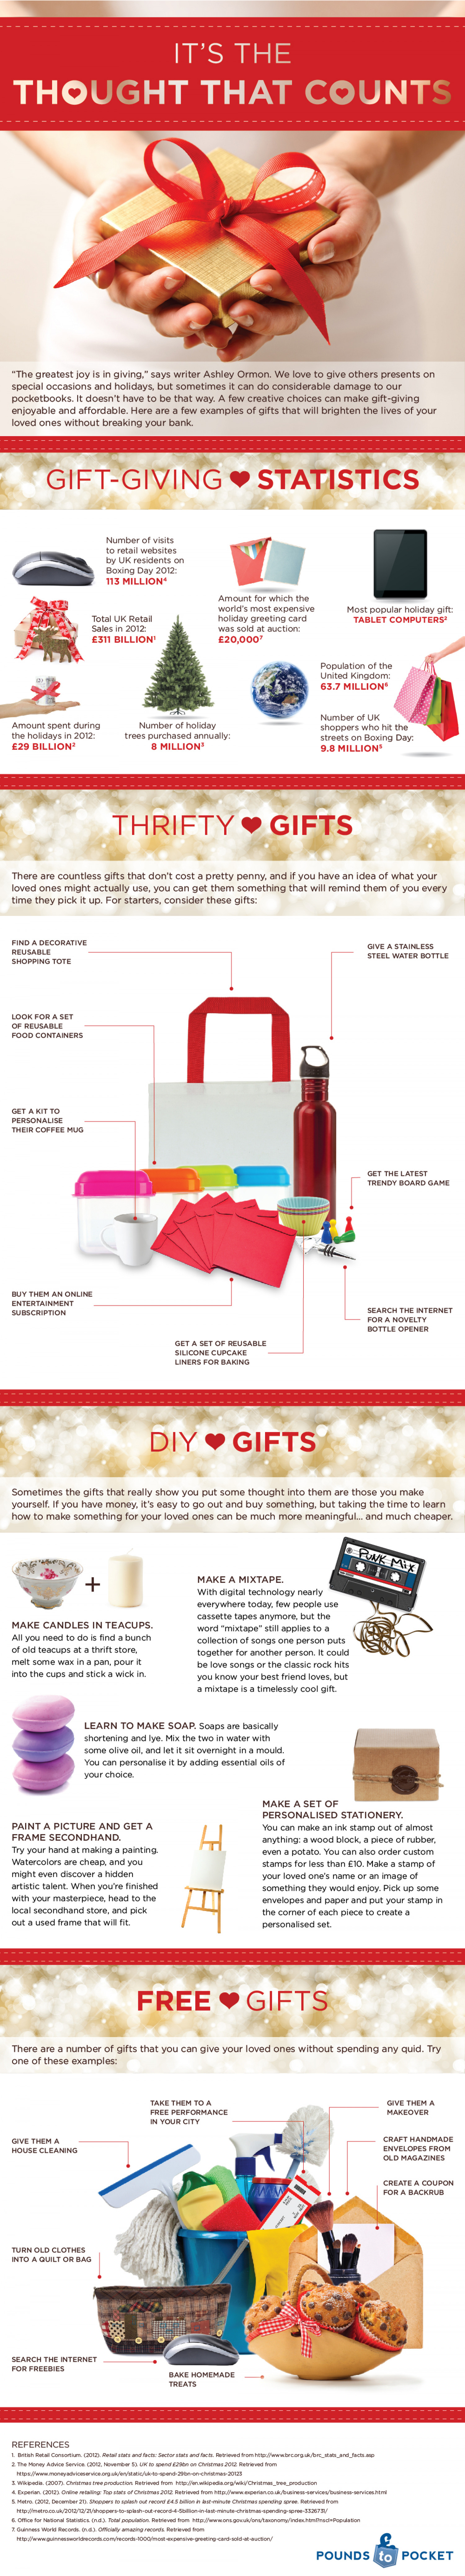 It's the Thought That Counts Infographic